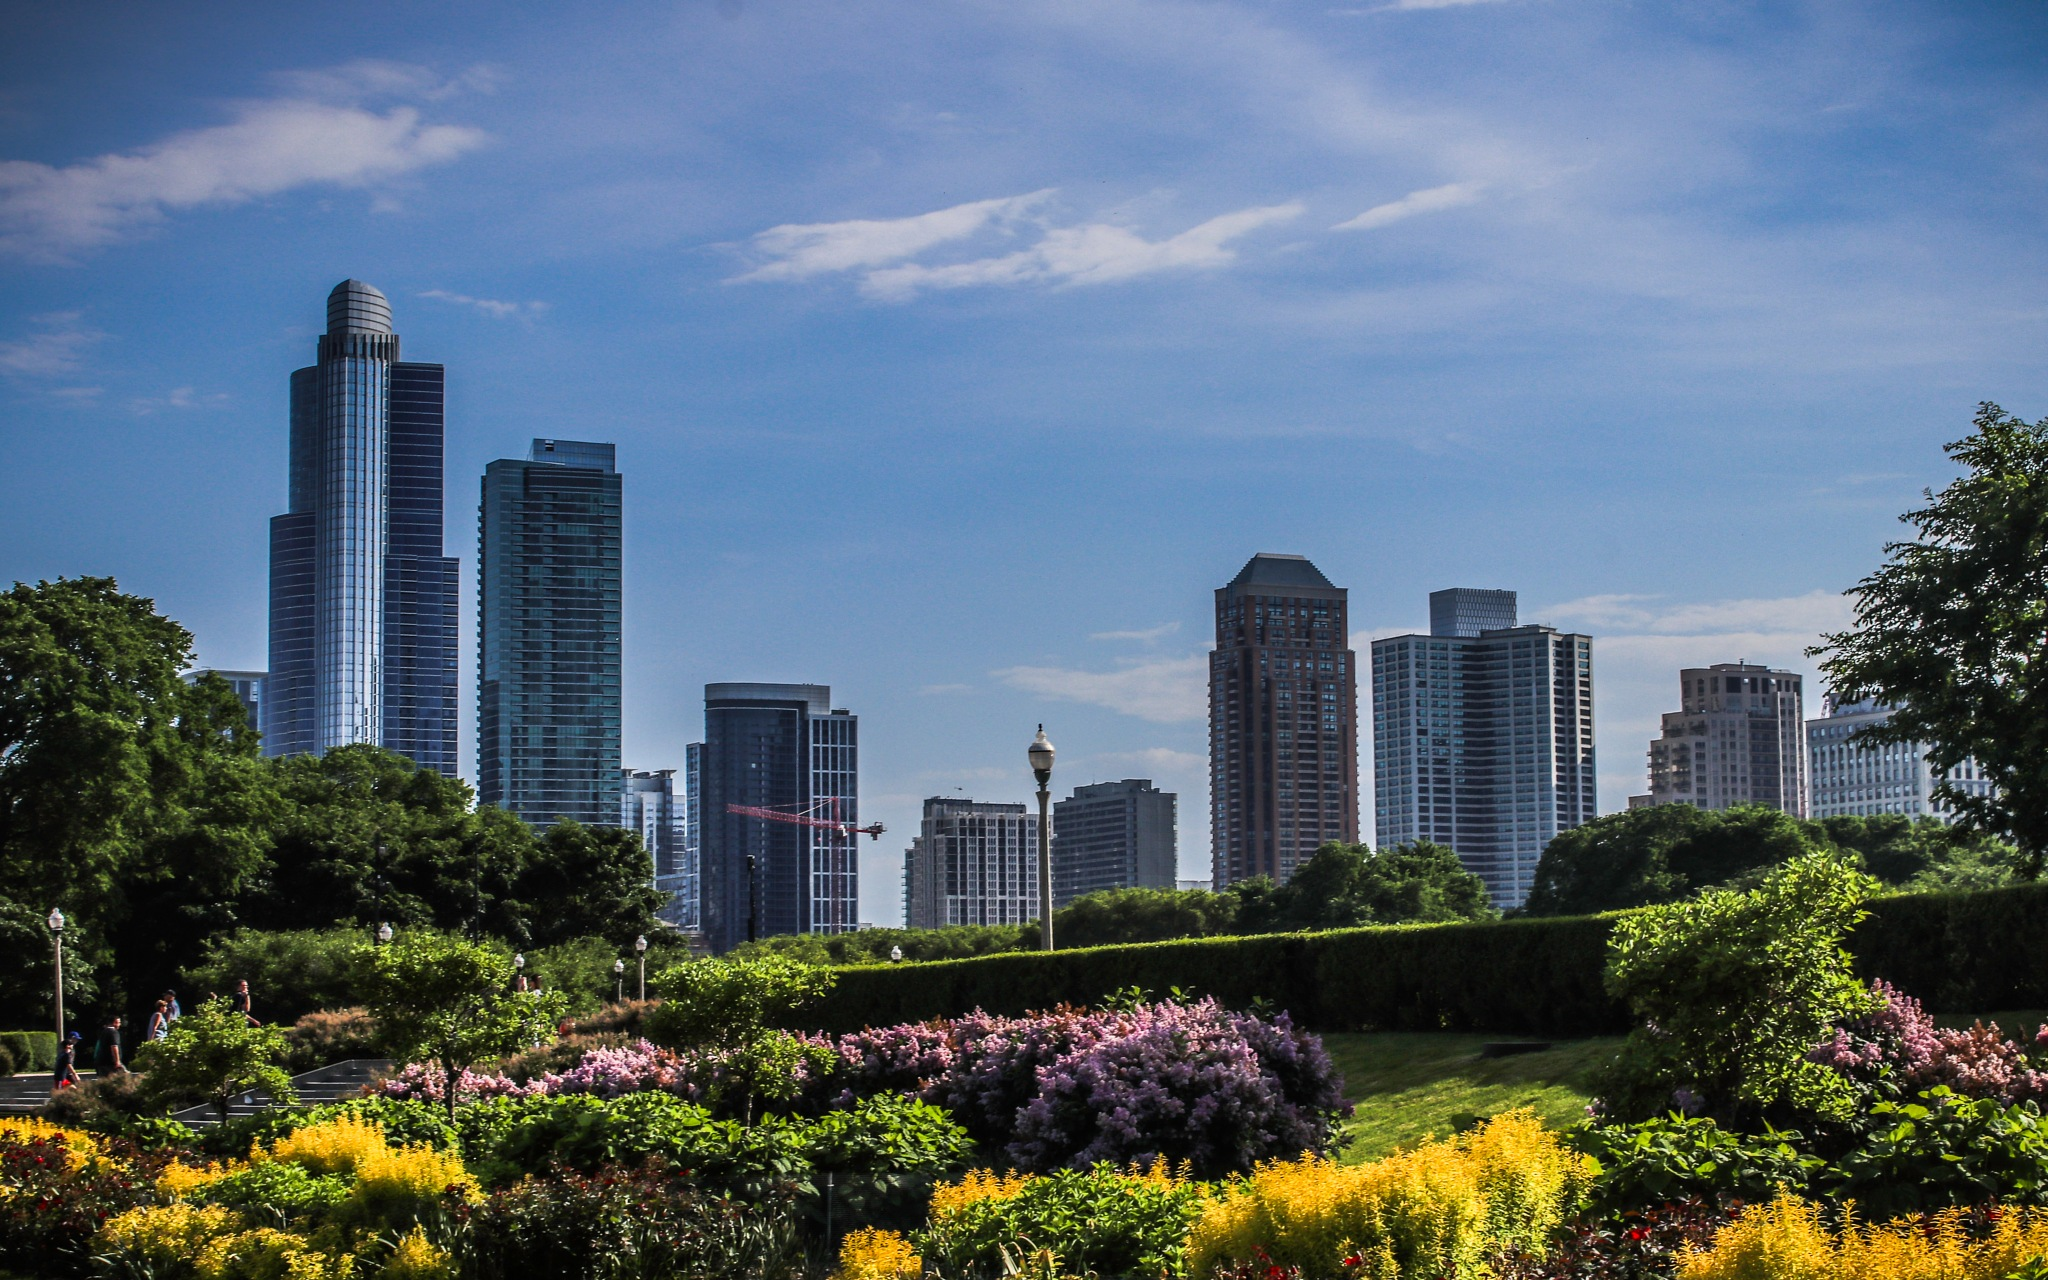 Chicago and Grant Park by Mark Hootman